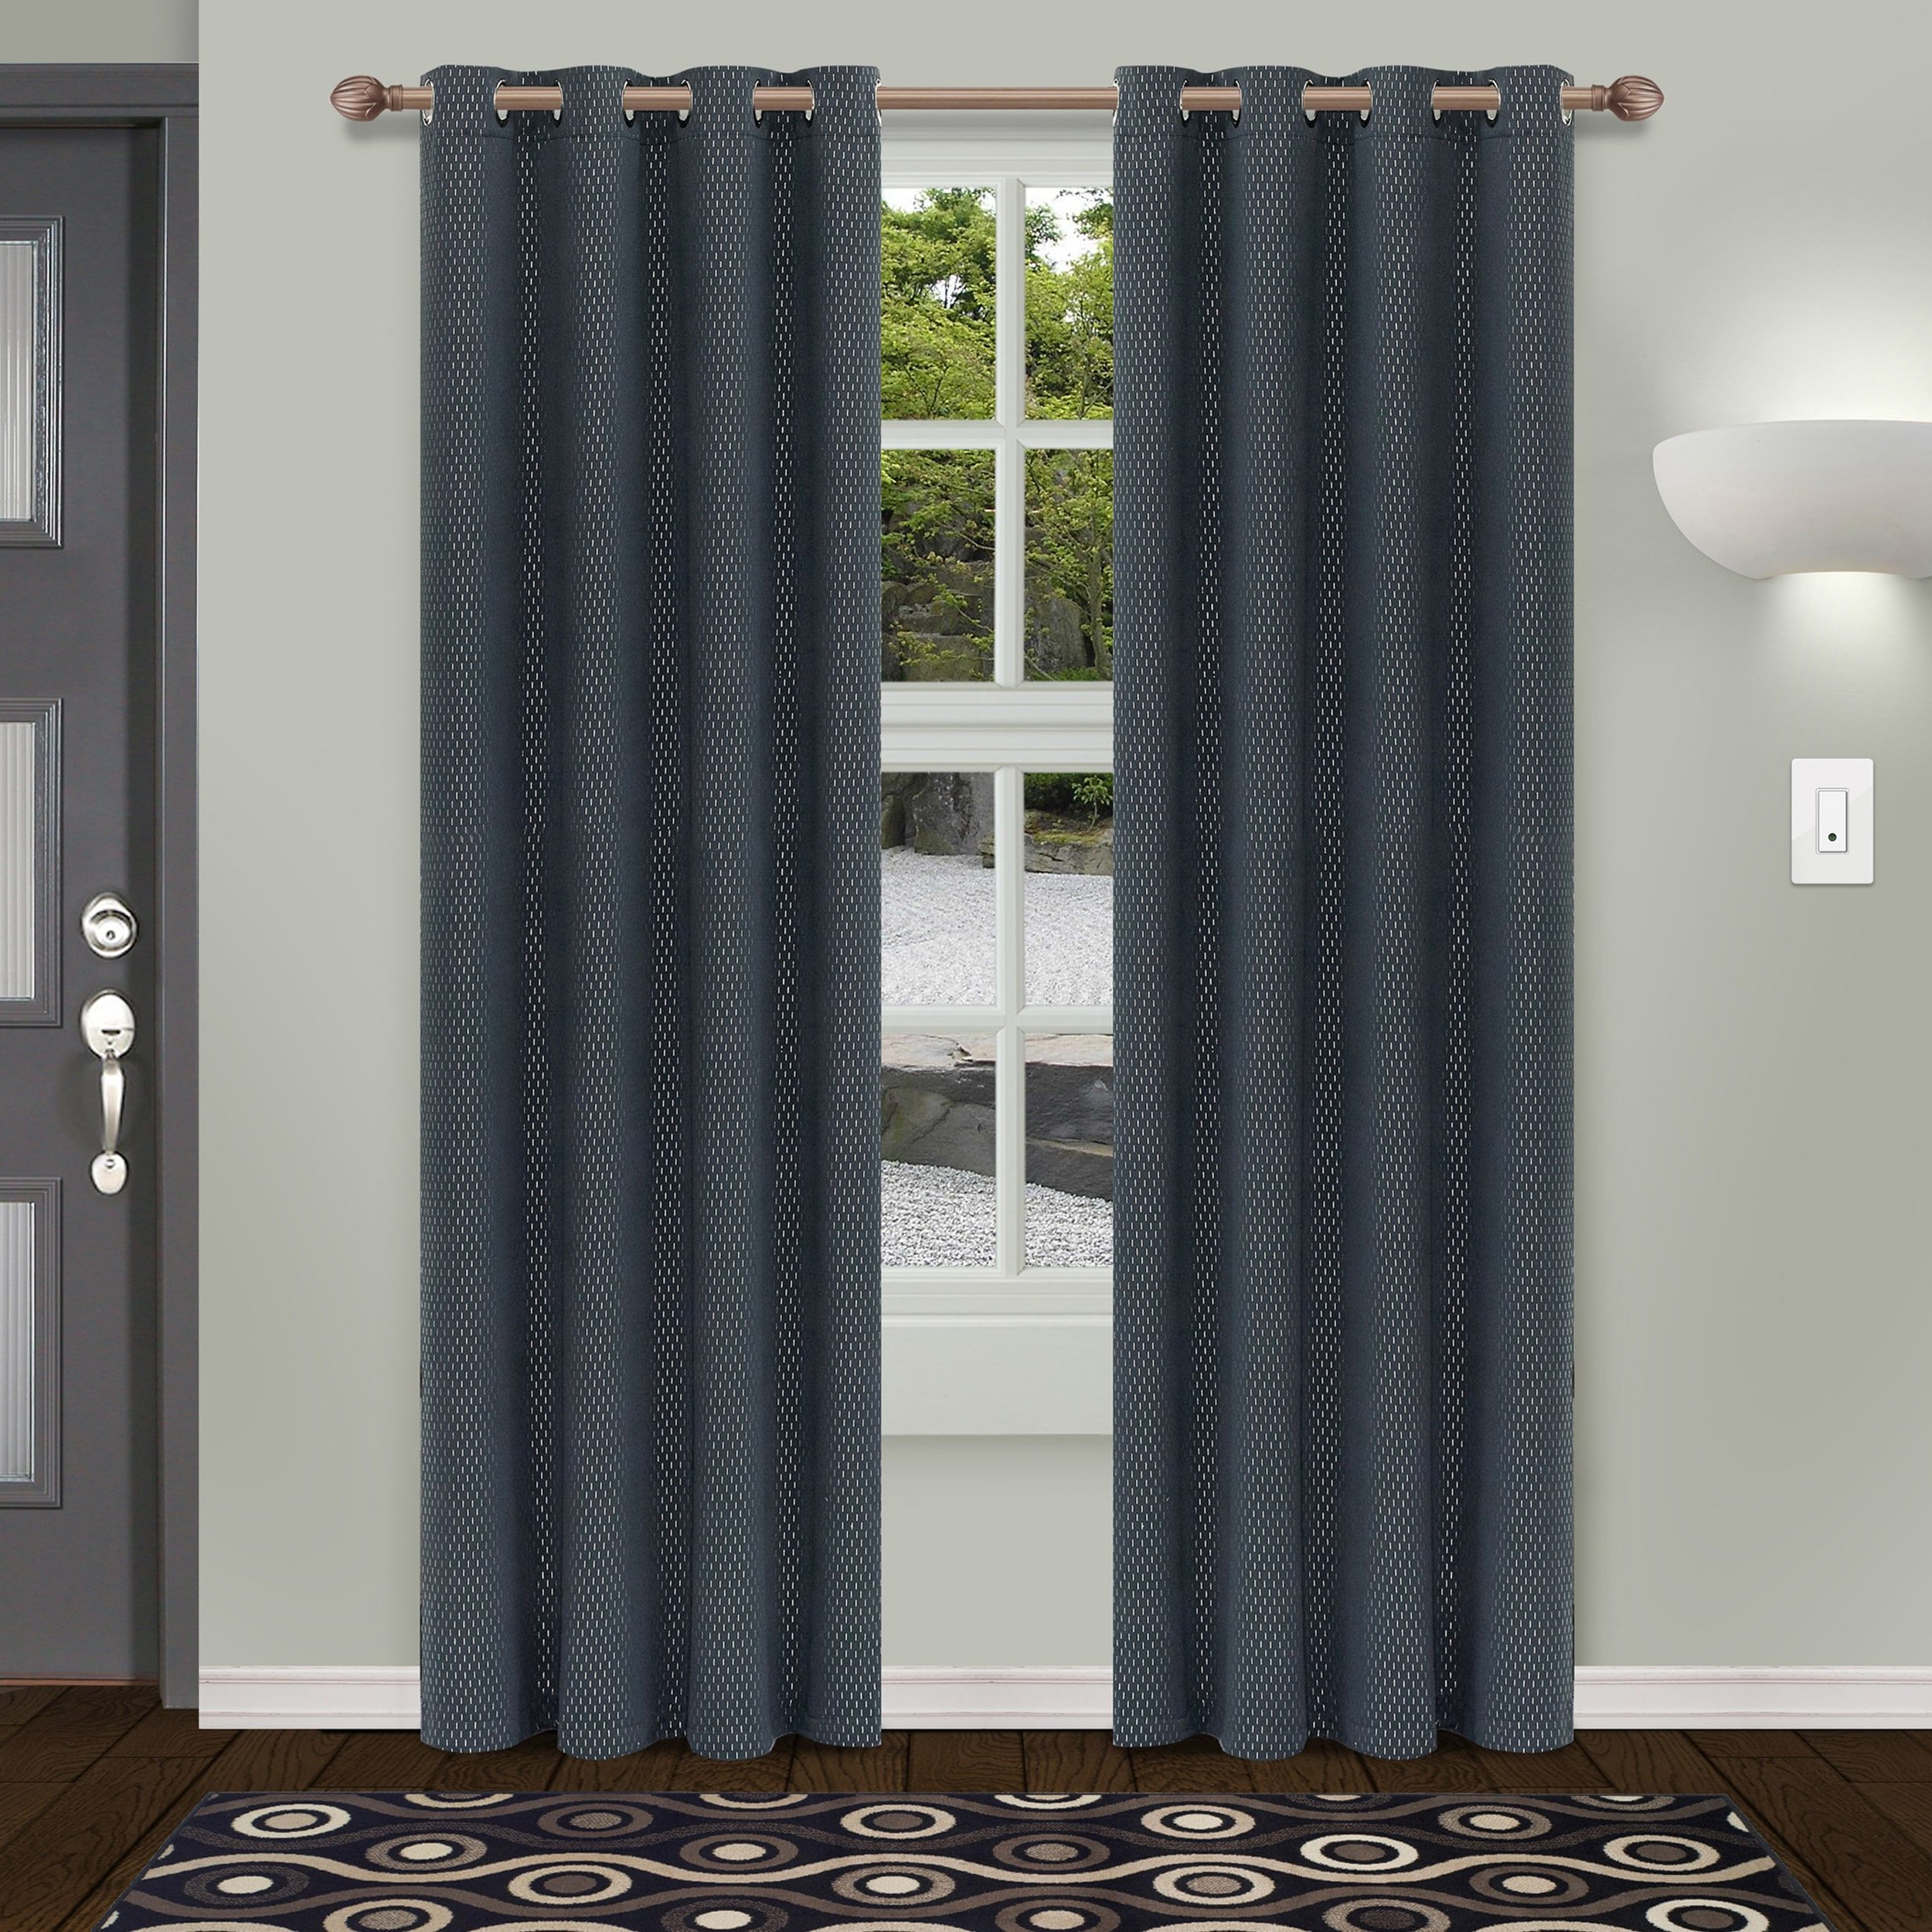 Superior Shimmer Insulated Thermal Blackout Grommet Curtain Pertaining To Recent Superior Solid Insulated Thermal Blackout Grommet Curtain Panel Pairs (View 4 of 20)